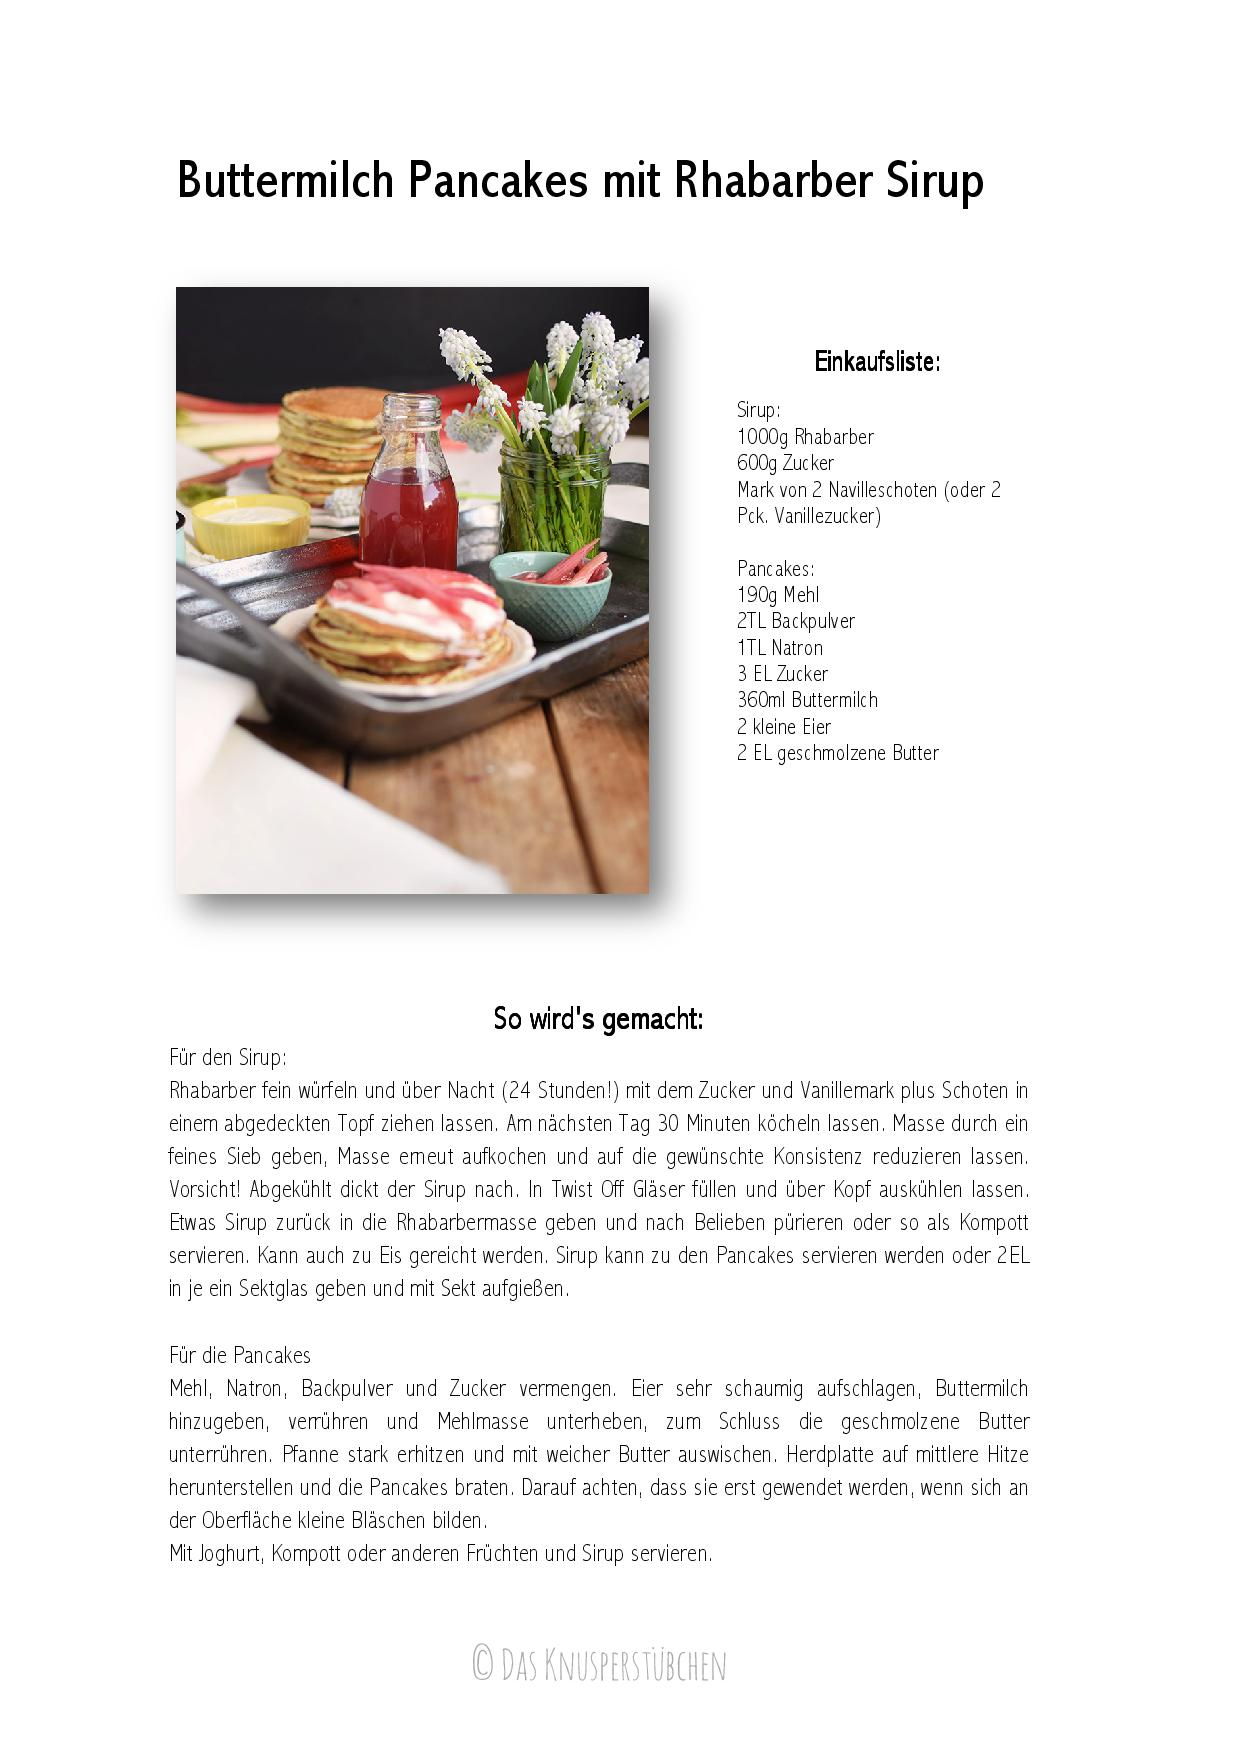 Buttermilch Pancakes mit Rhabarber Sirup - Pancakes with rhubarb syrup-001